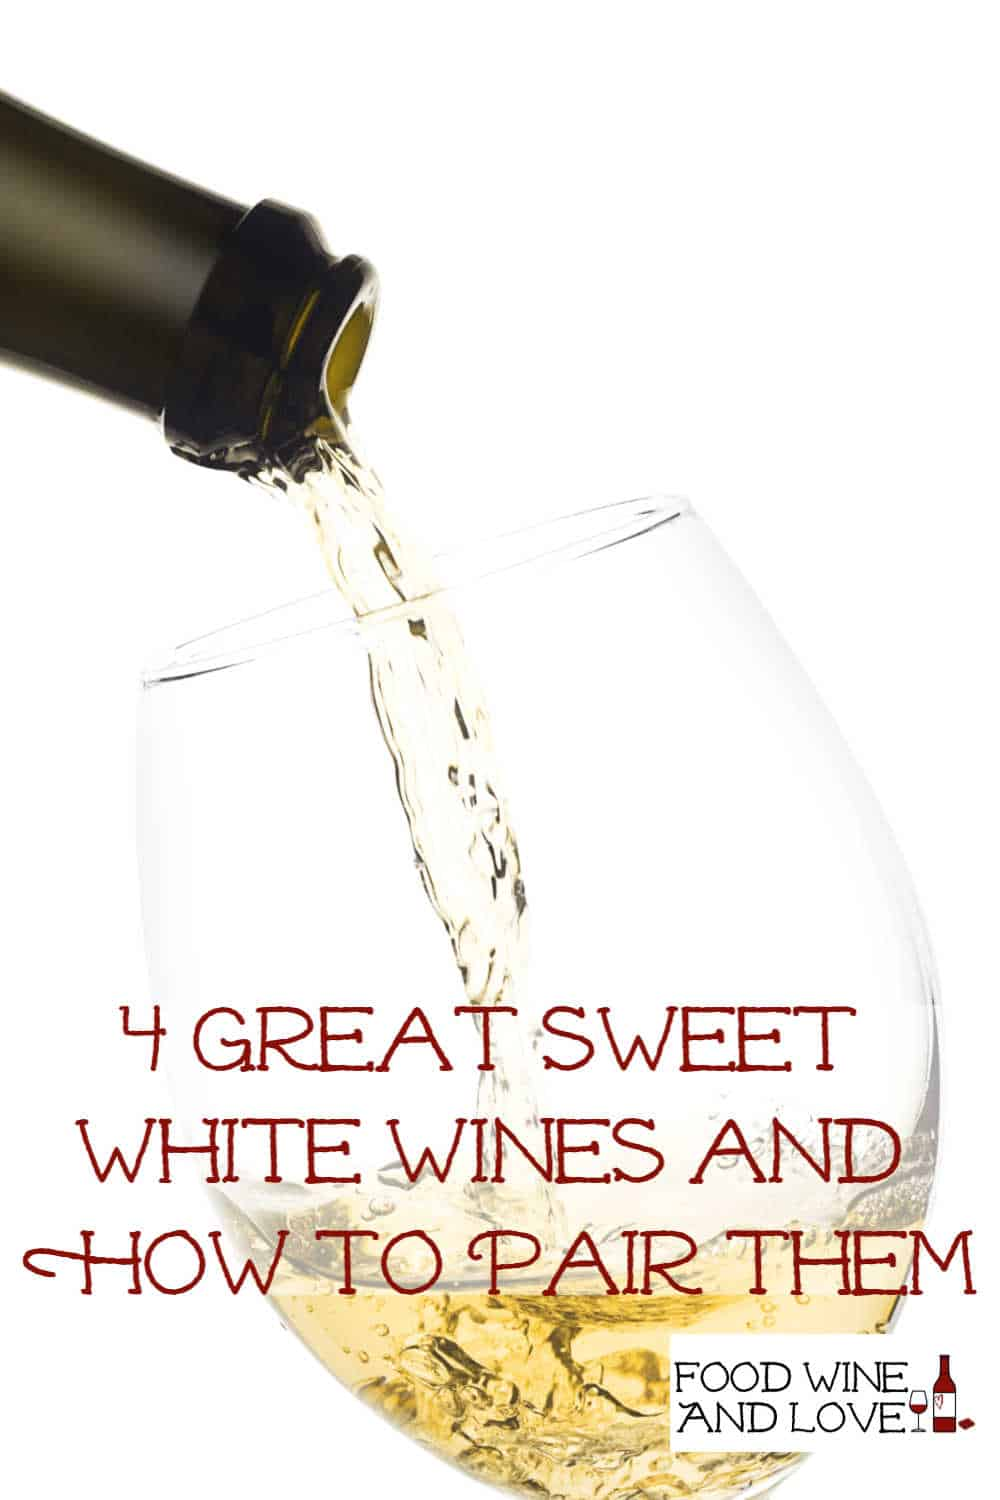 4 Great Sweet White Wines and How to Pair Them